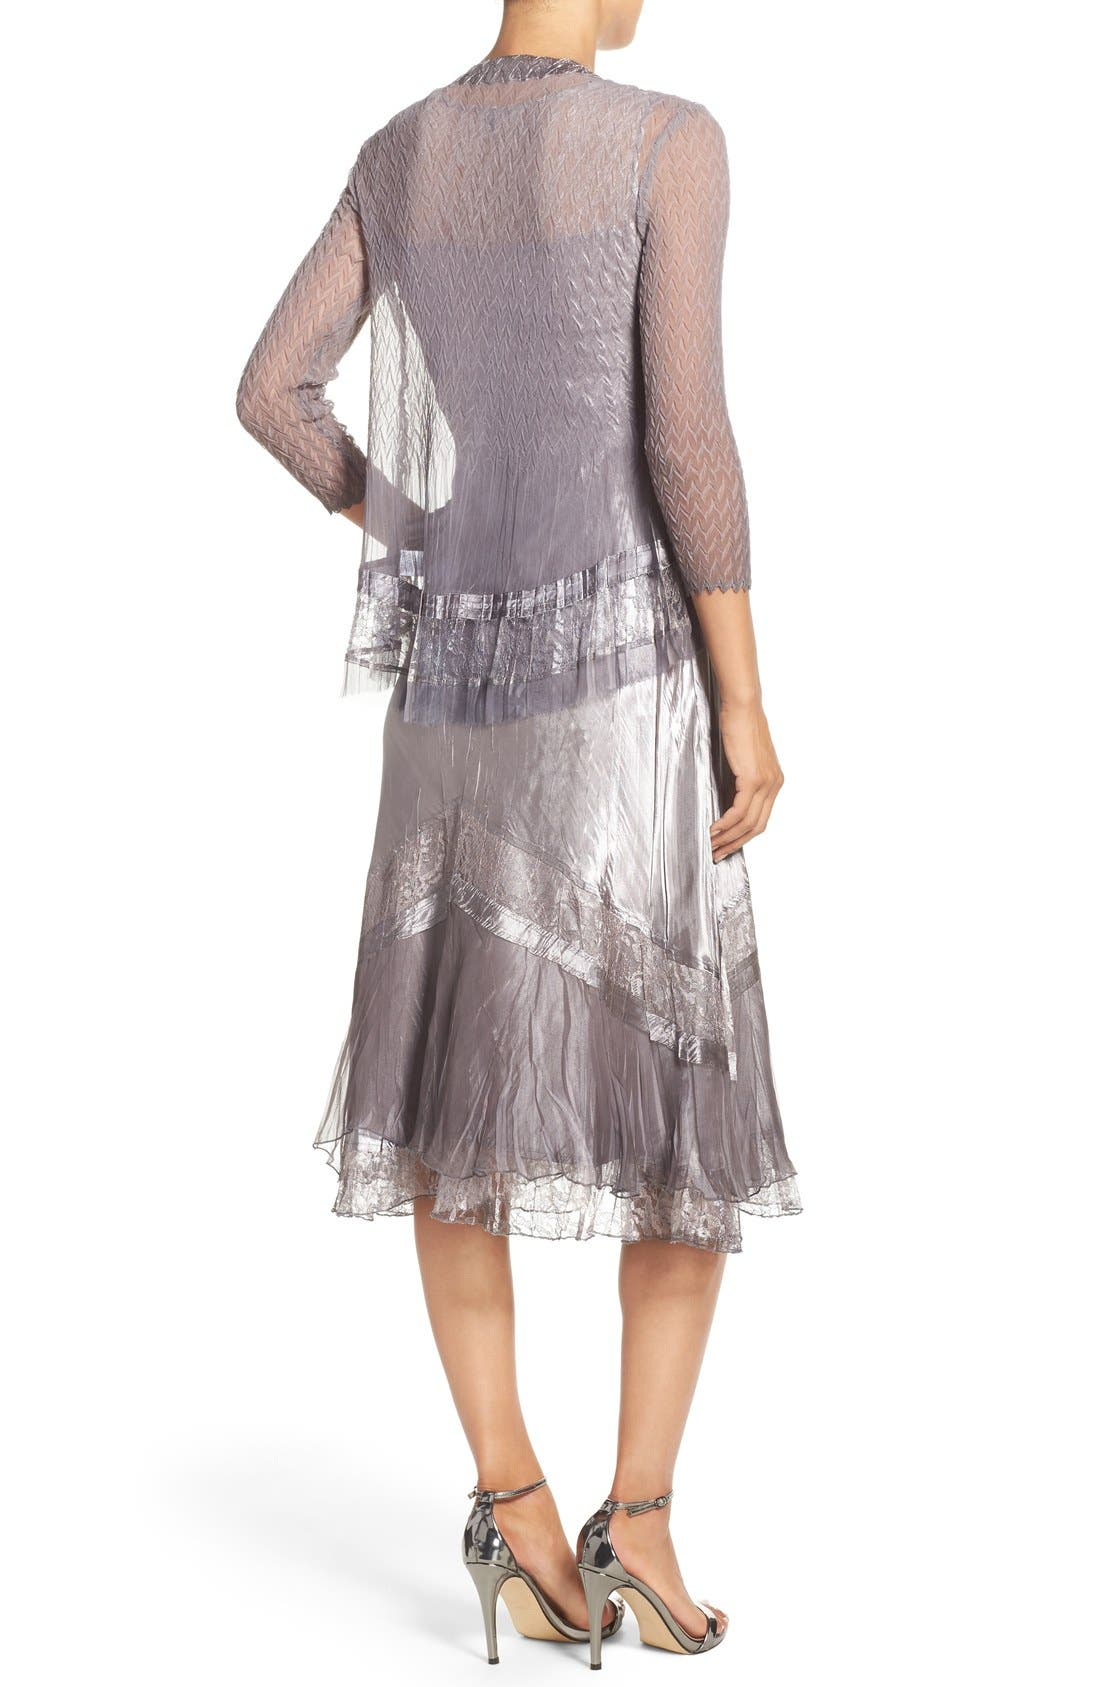 Ombré Charmeuse A-Line Dress & Chiffon Jacket,                             Alternate thumbnail 3, color,                             Oyster Smoke Ombre